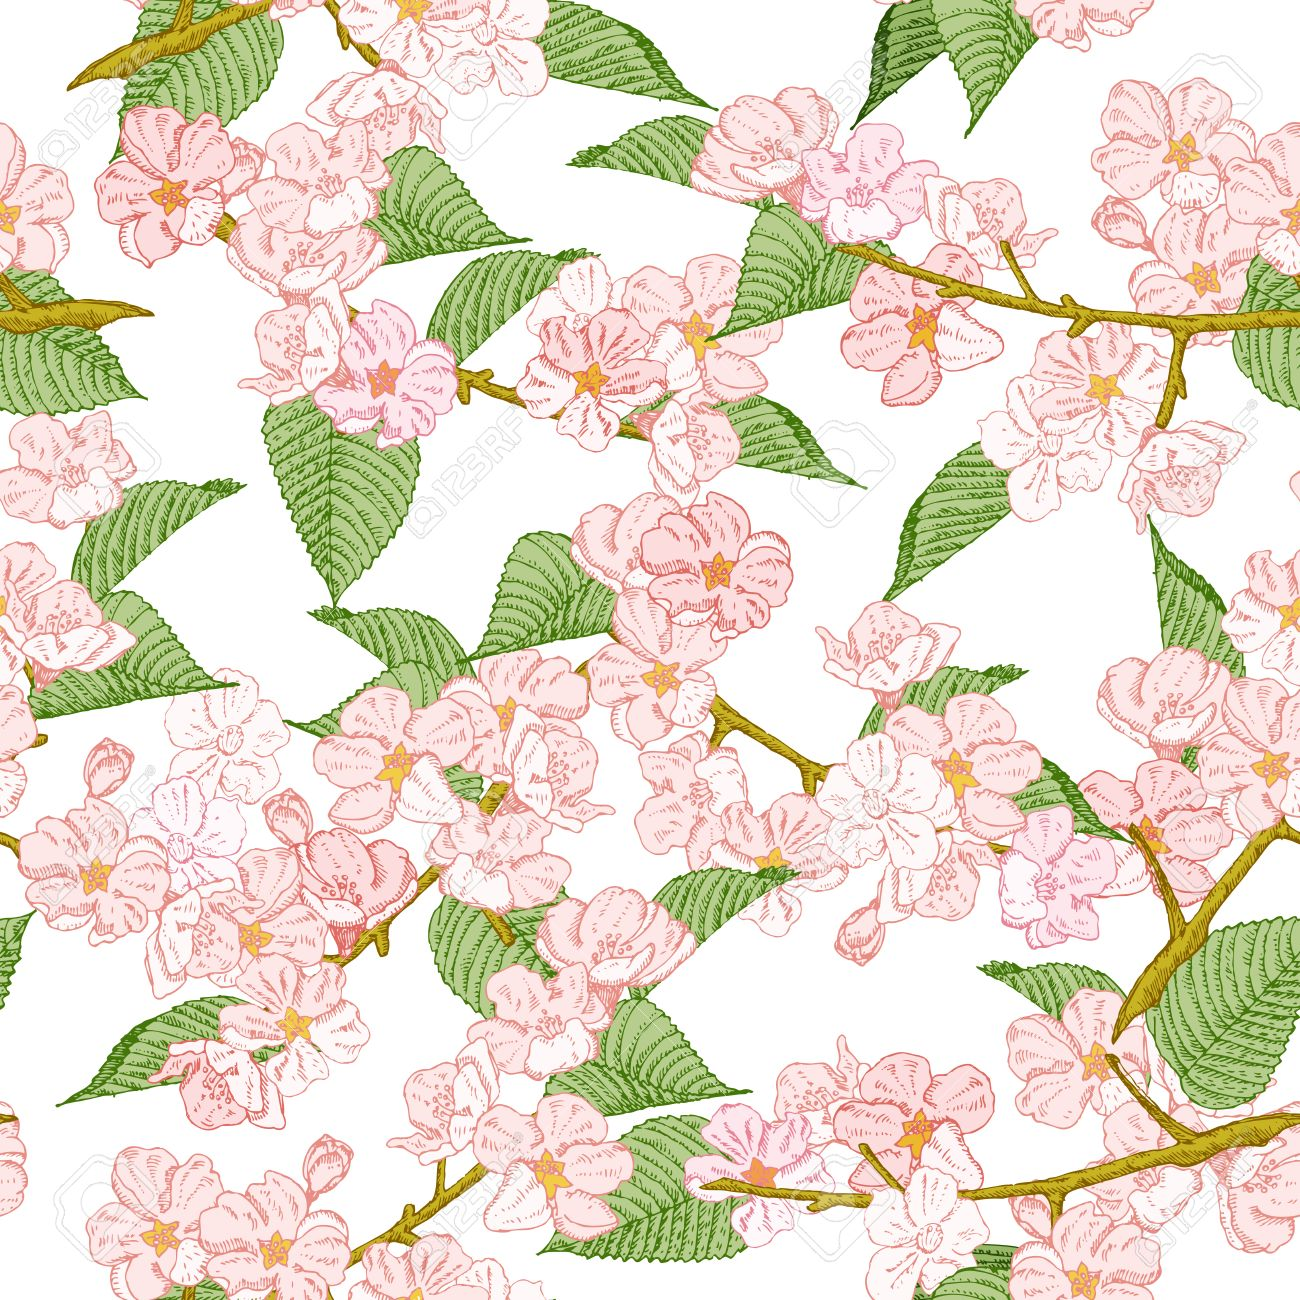 Seamless Pattern With Spring Flowers Apple And Cherry Blossom Summer Floral Background Texture